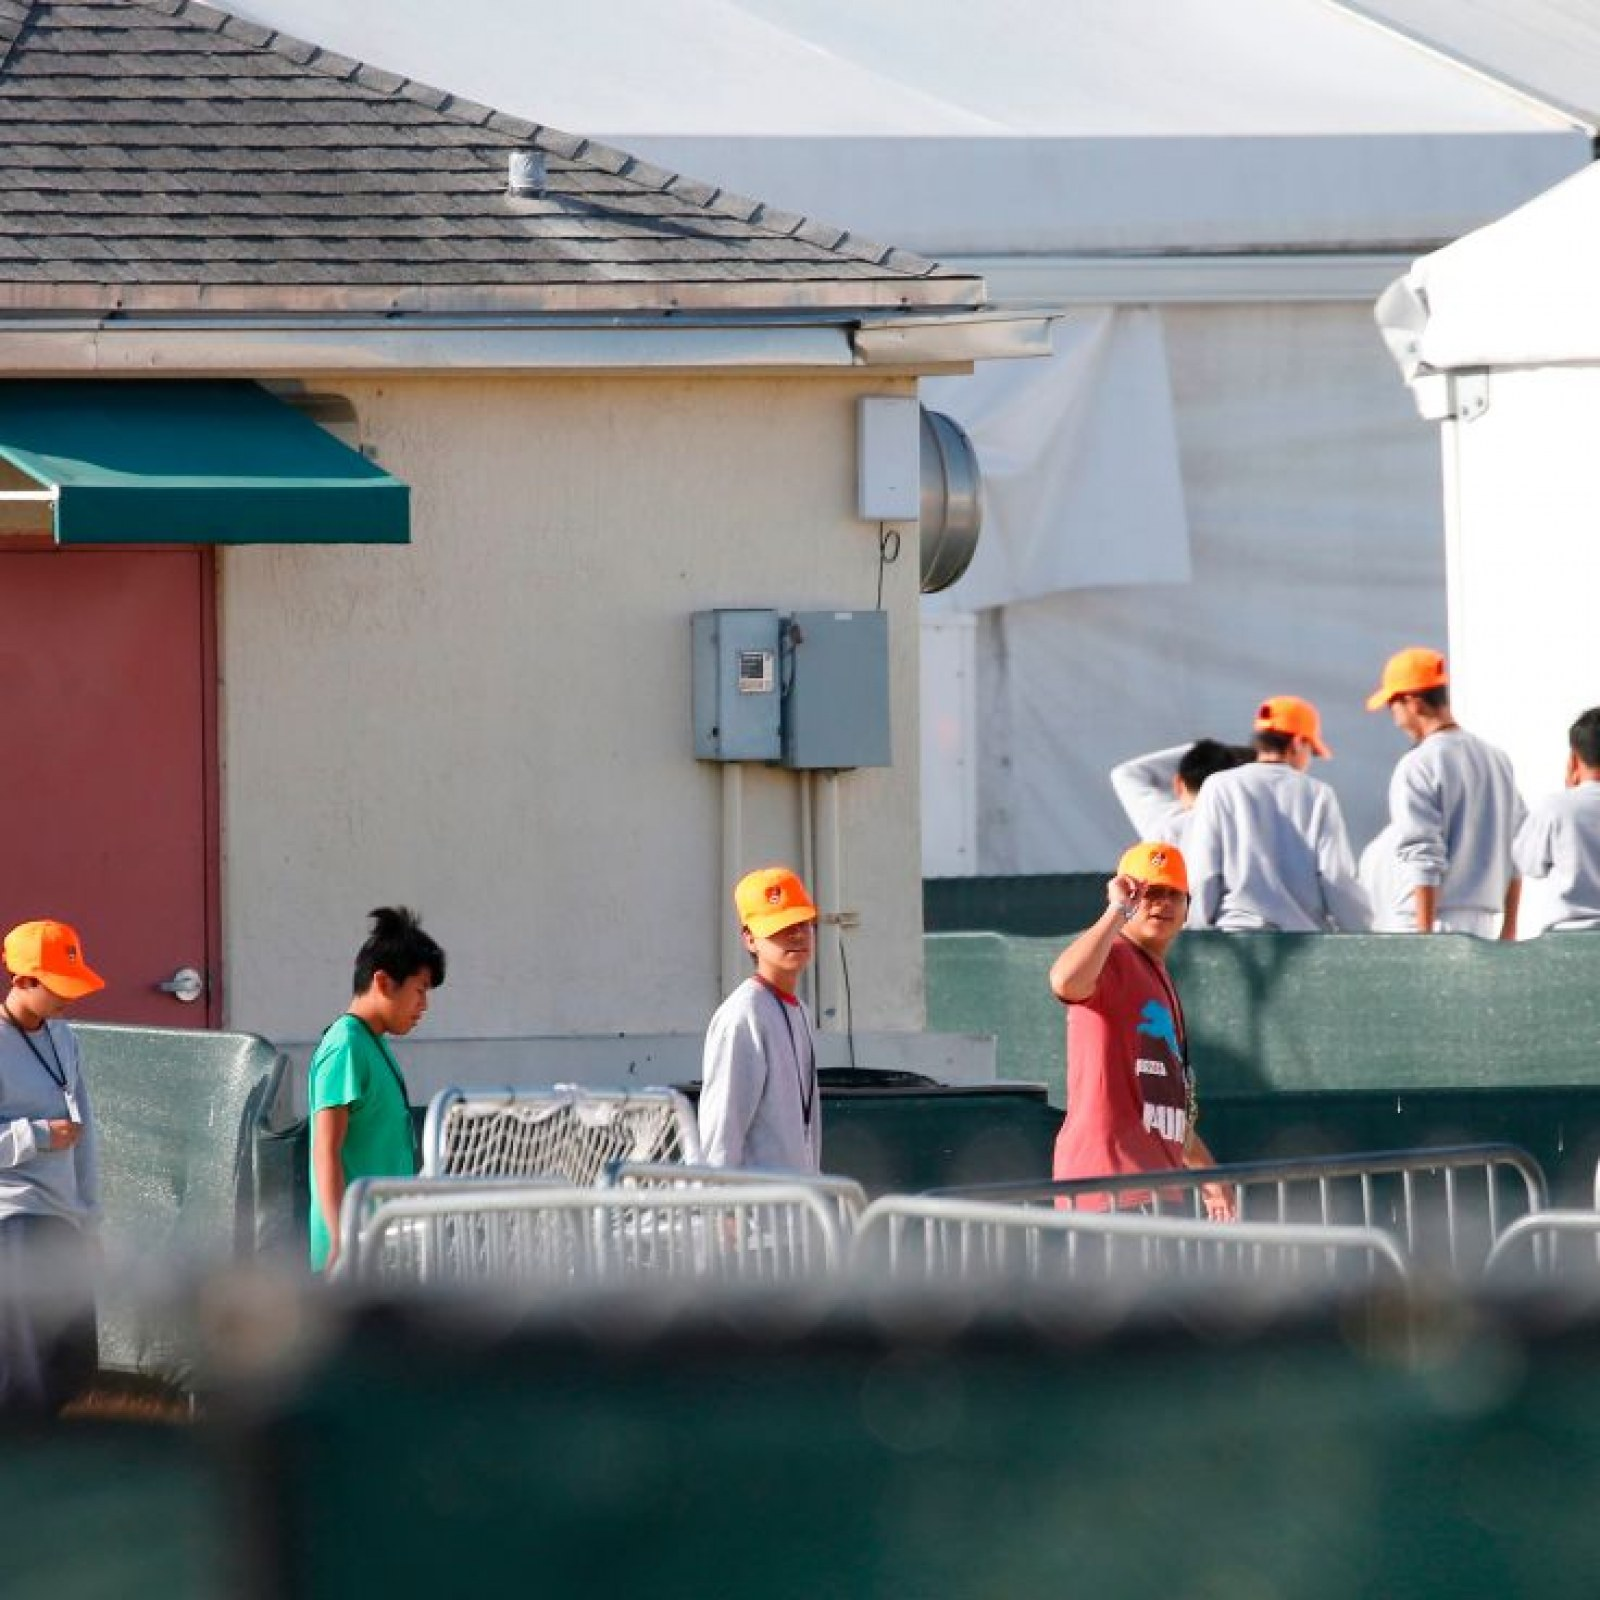 Are Migrant Detention Centers Worse Under Donald Trump Than